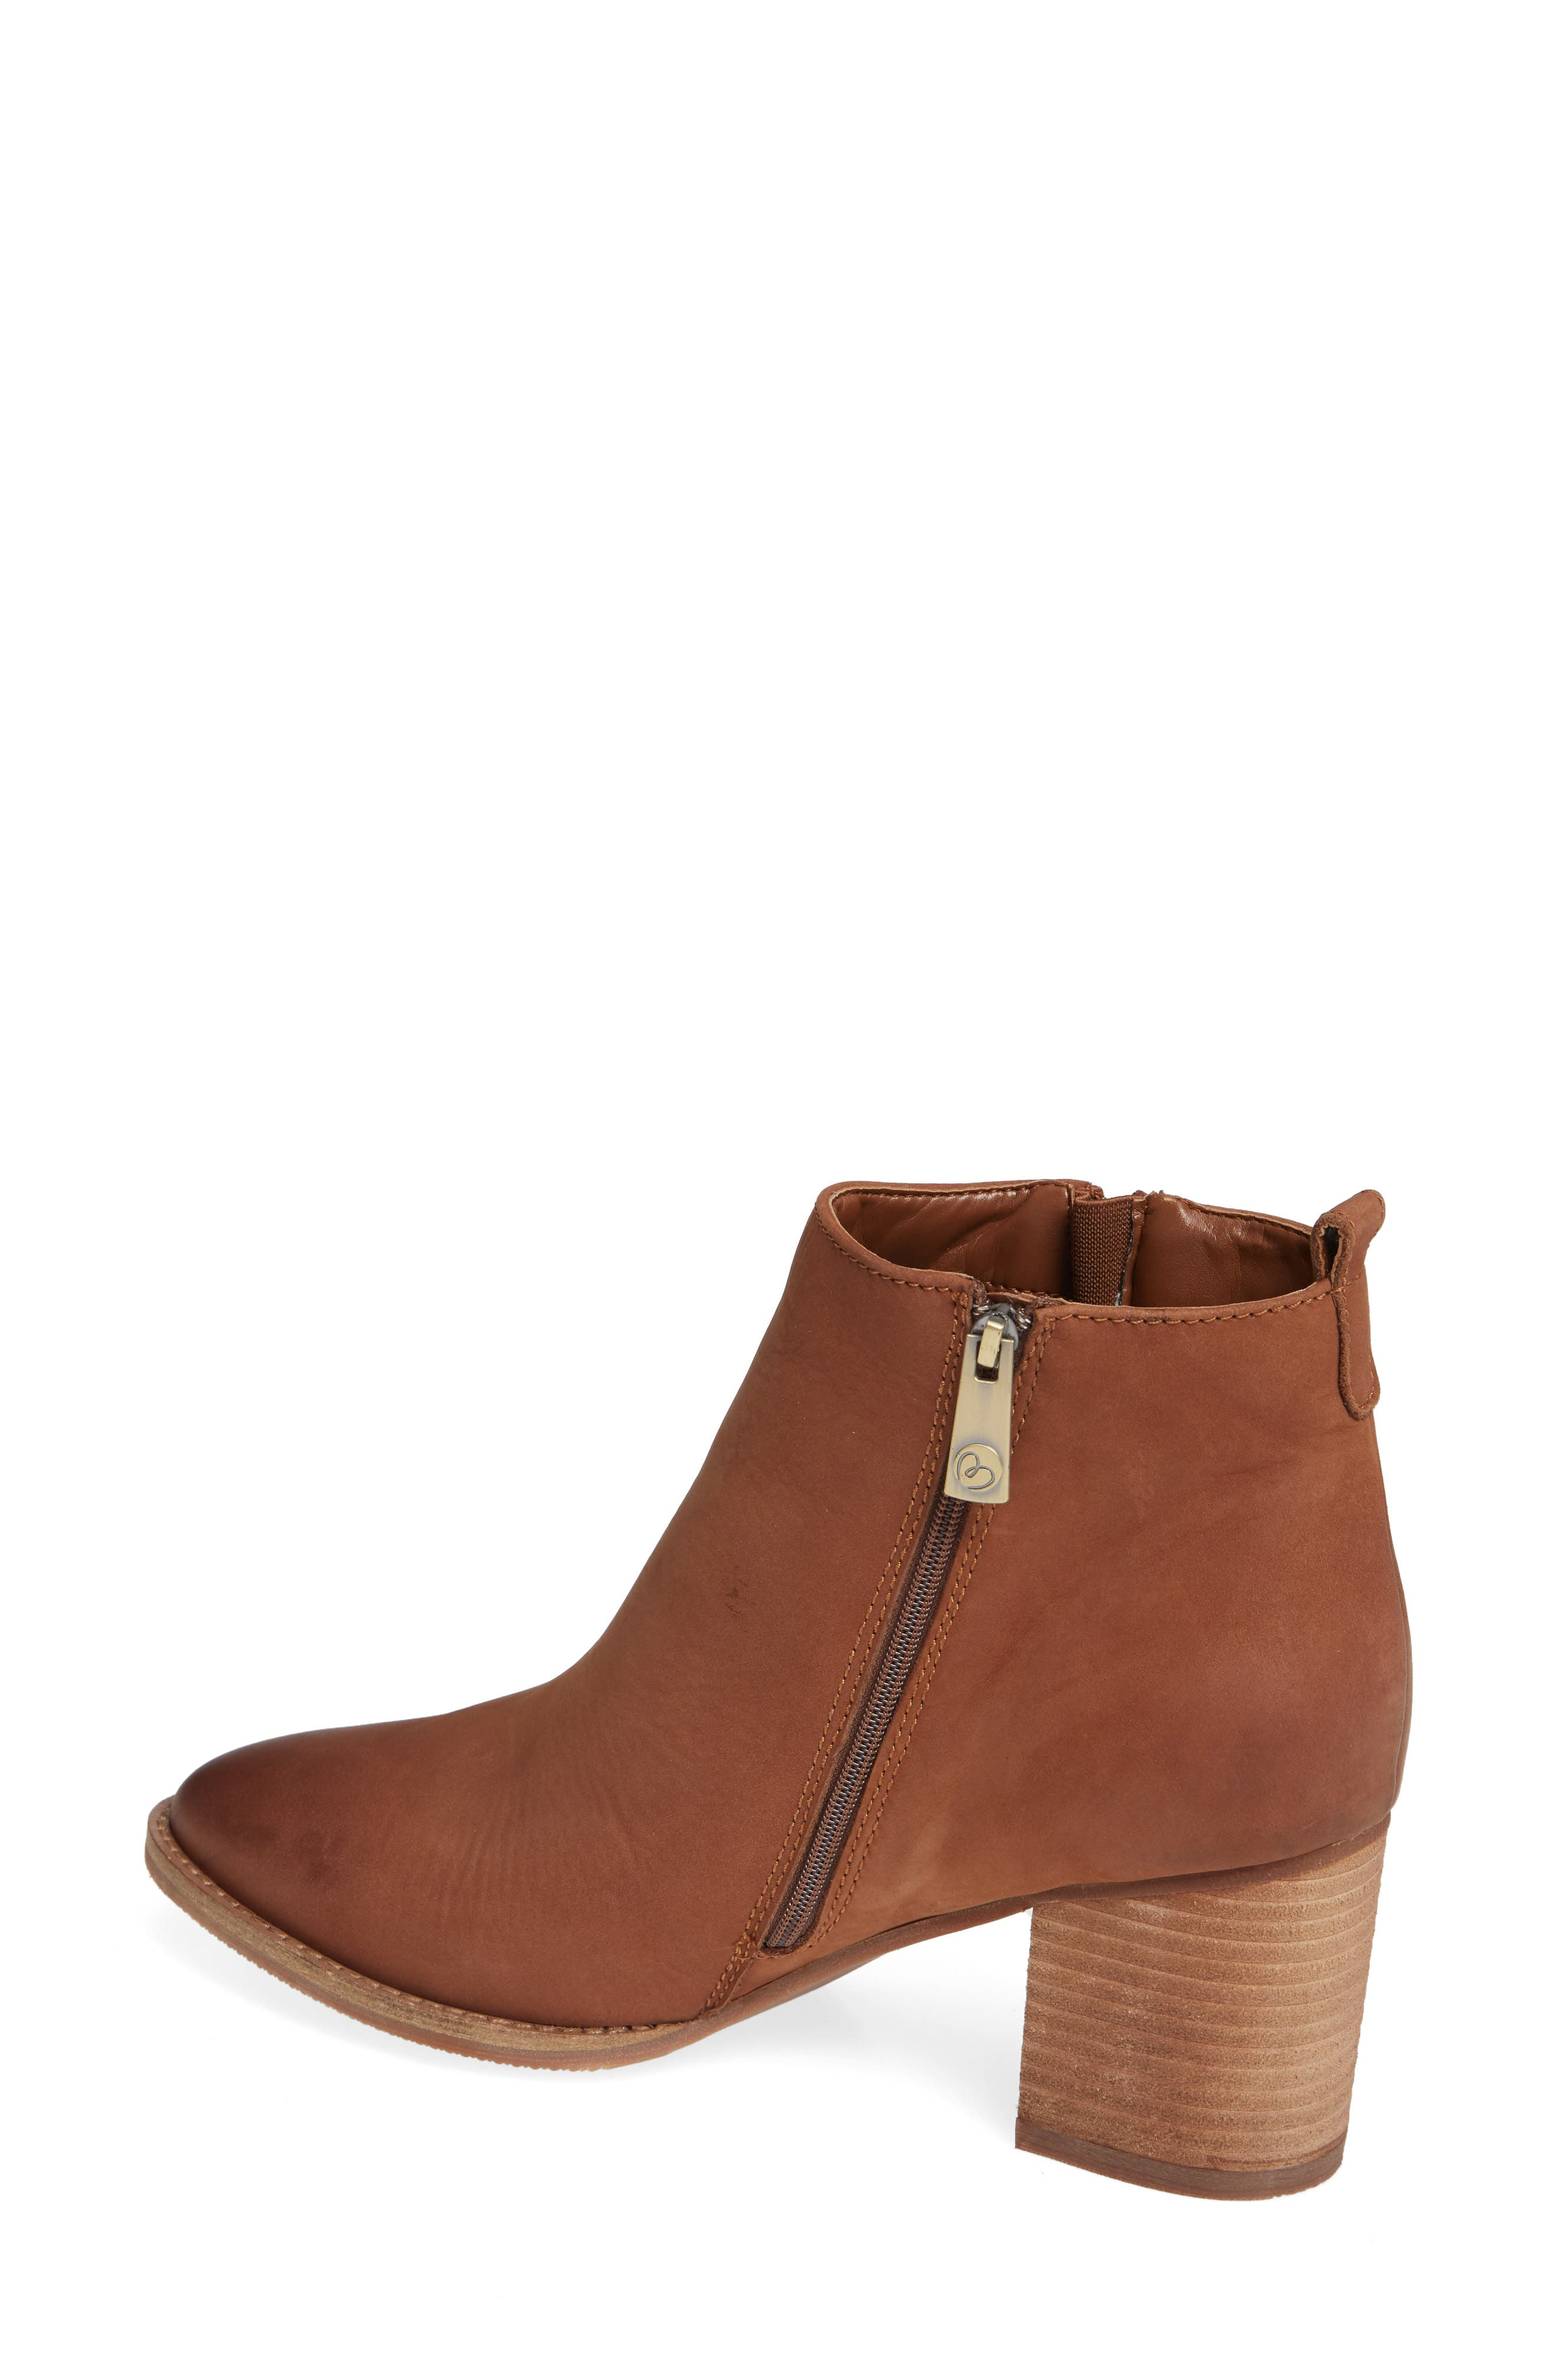 Nova Waterproof Bootie,                             Alternate thumbnail 2, color,                             COGNAC NUBUCK